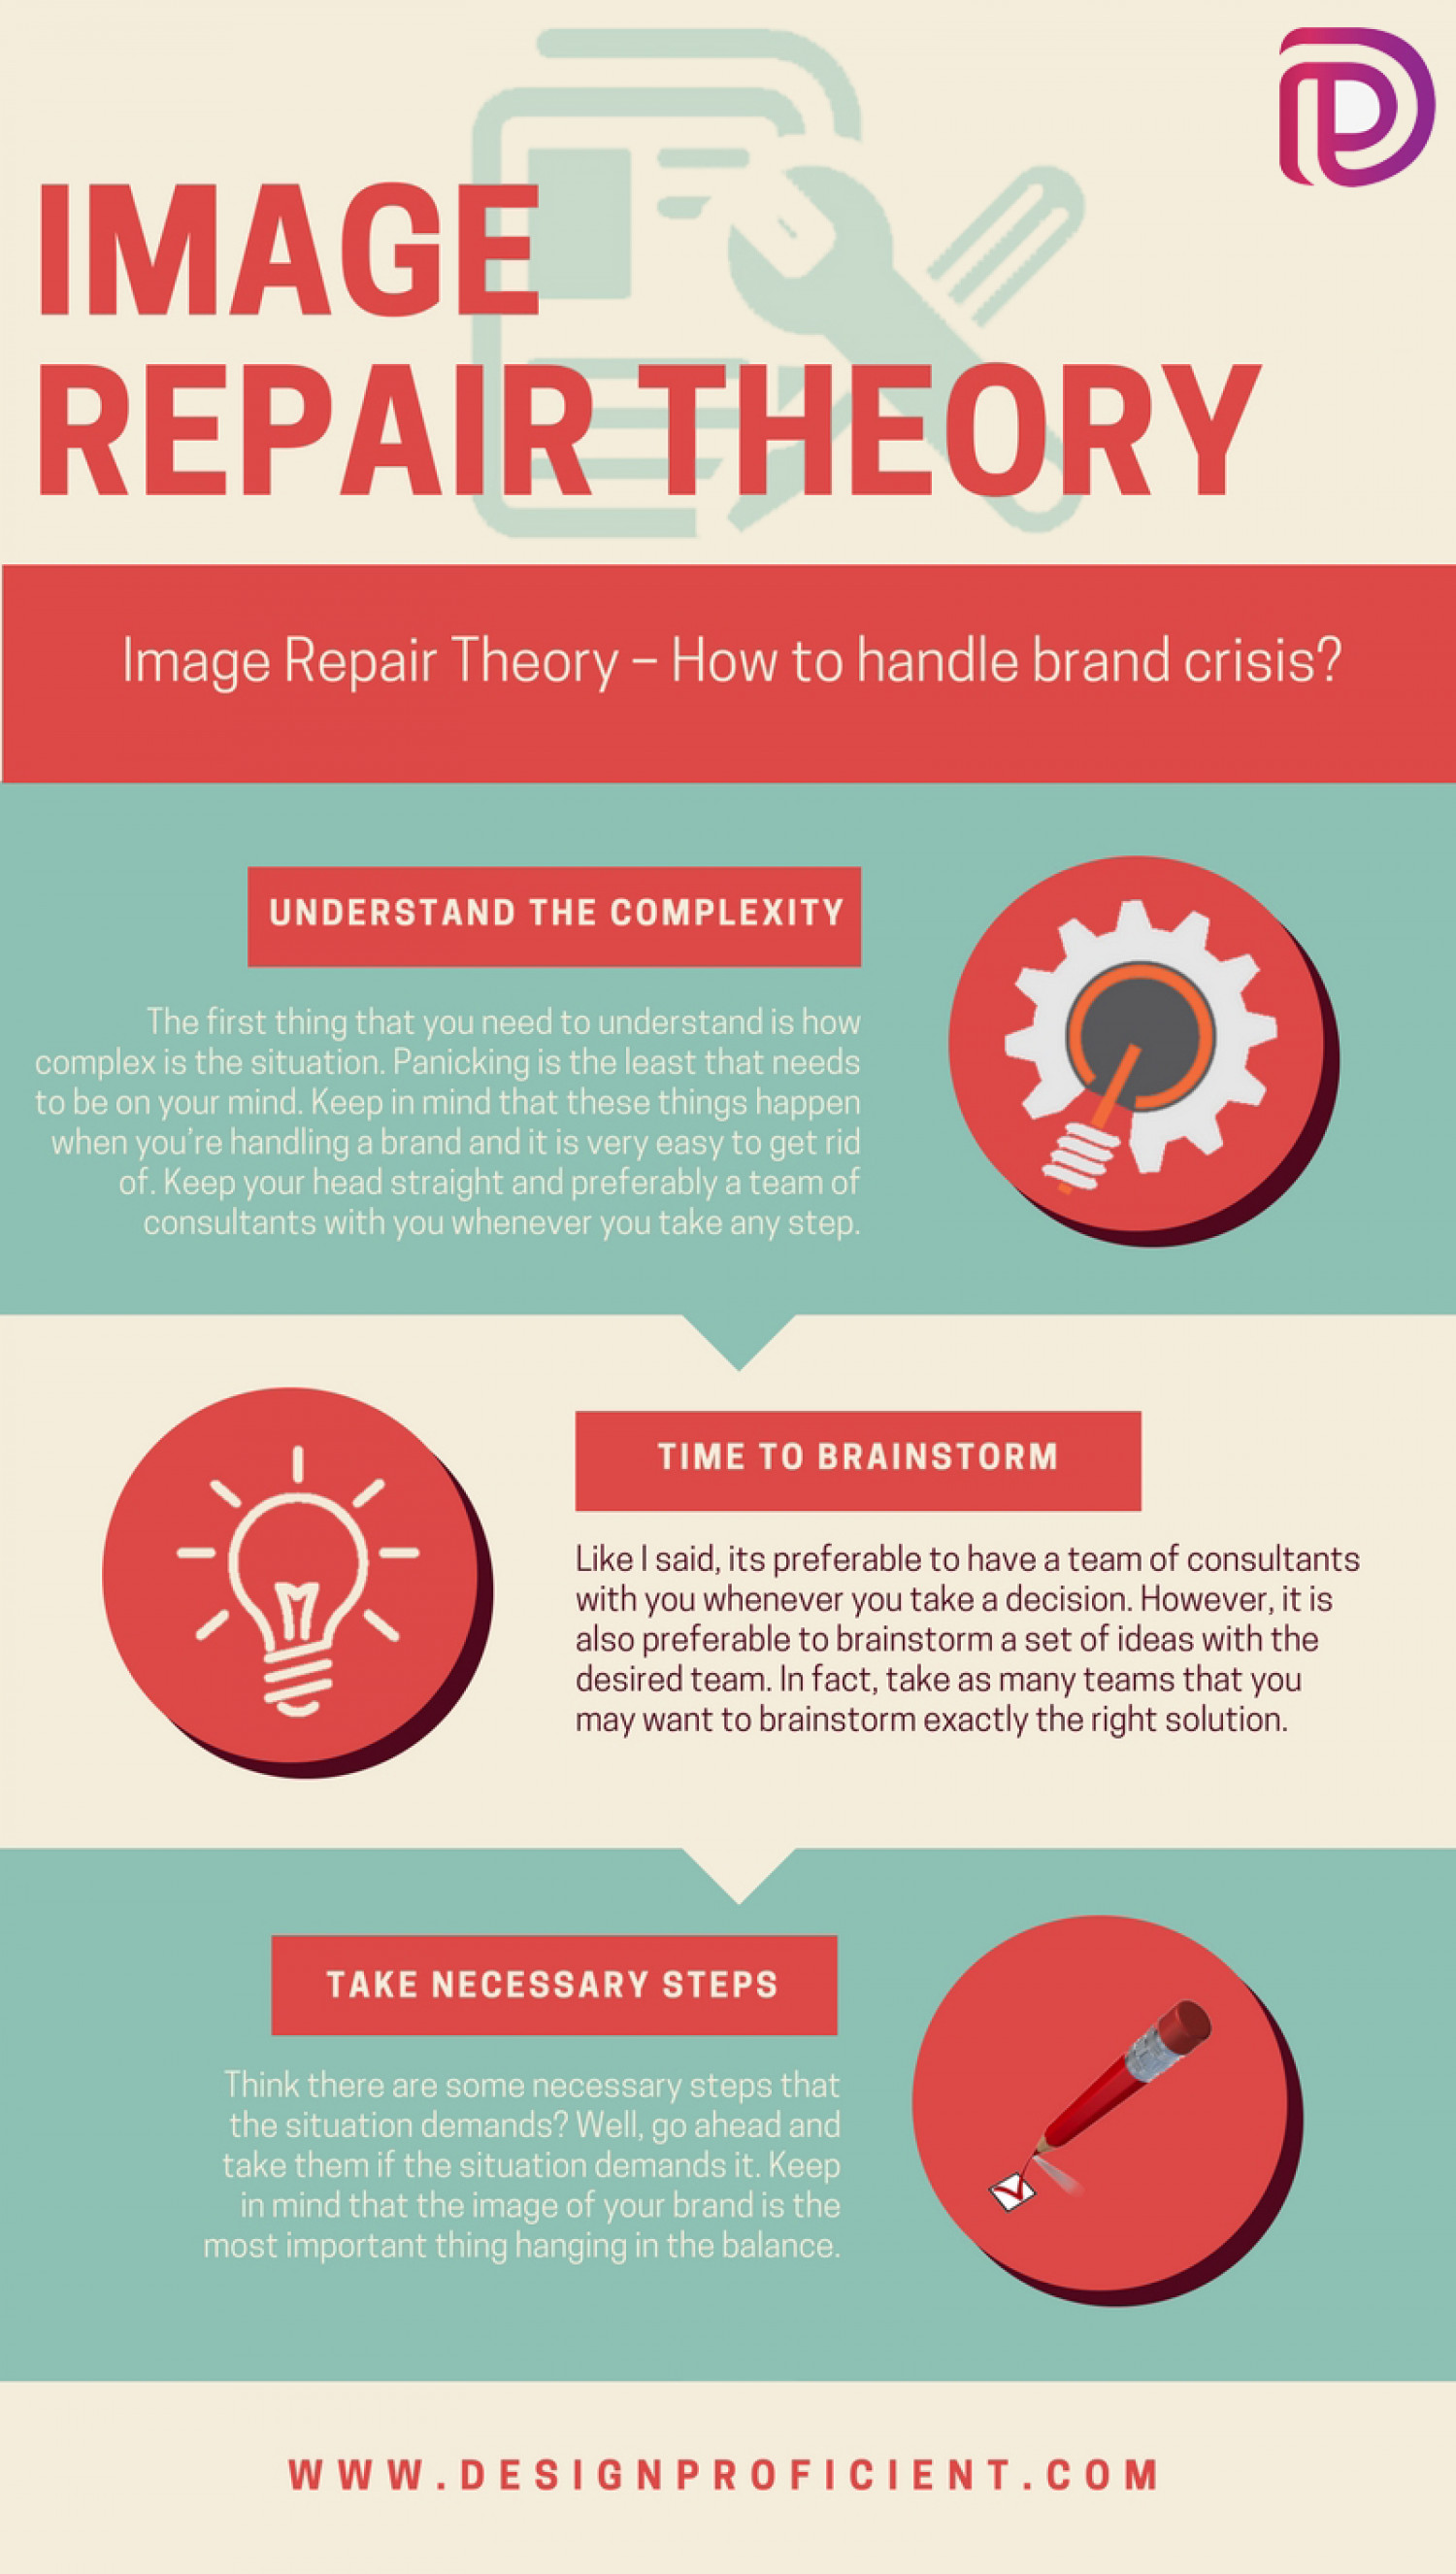 Image Repair Theory – How to handle brand crisis? Infographic